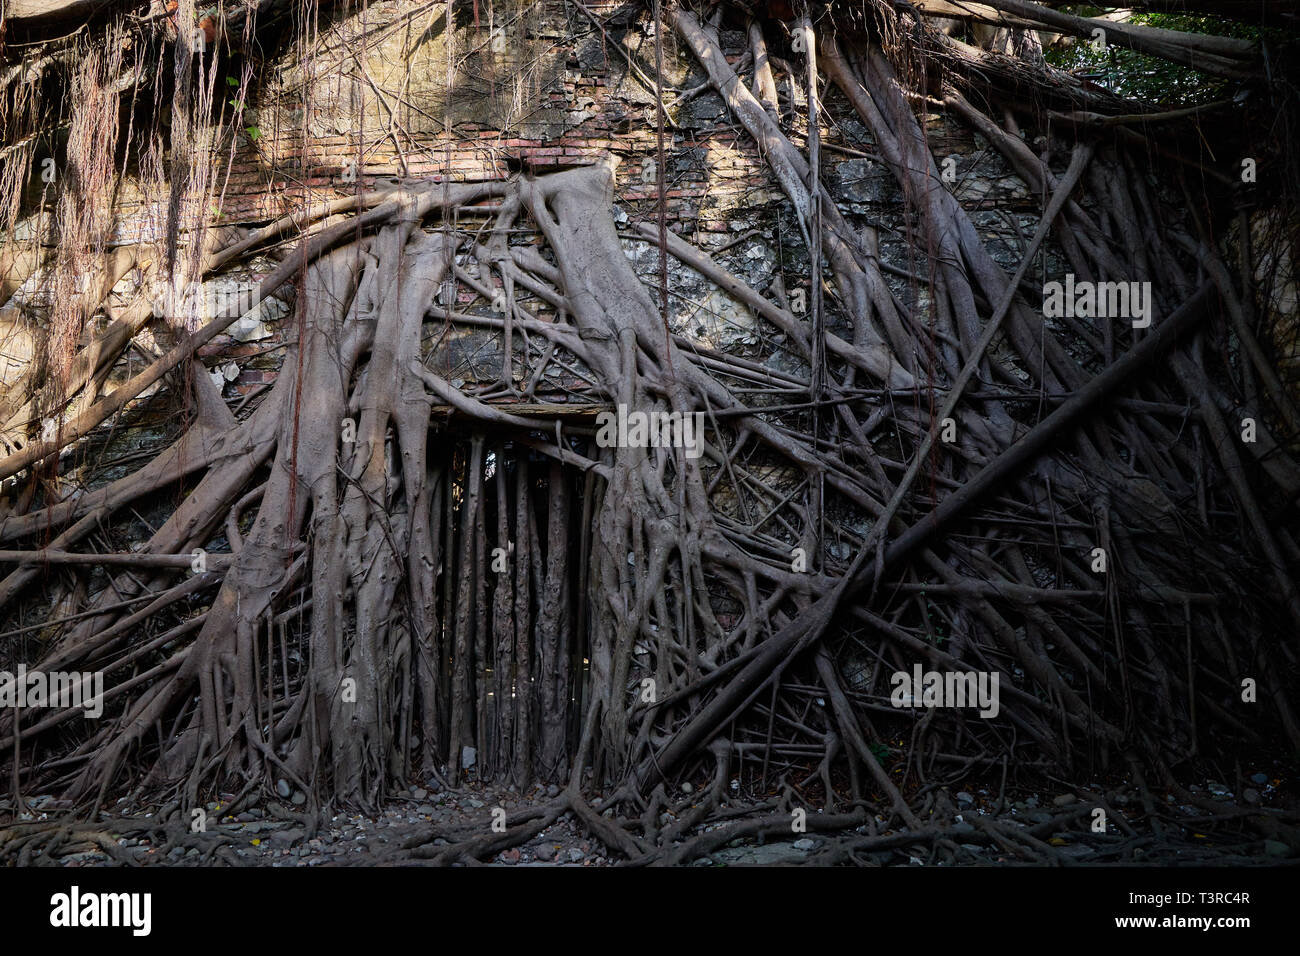 Huge vine root of banyan trees covered building at Former Tait & Co. Merchant House, Popular site featuring Taiwan history exhibits in a former wareho - Stock Image